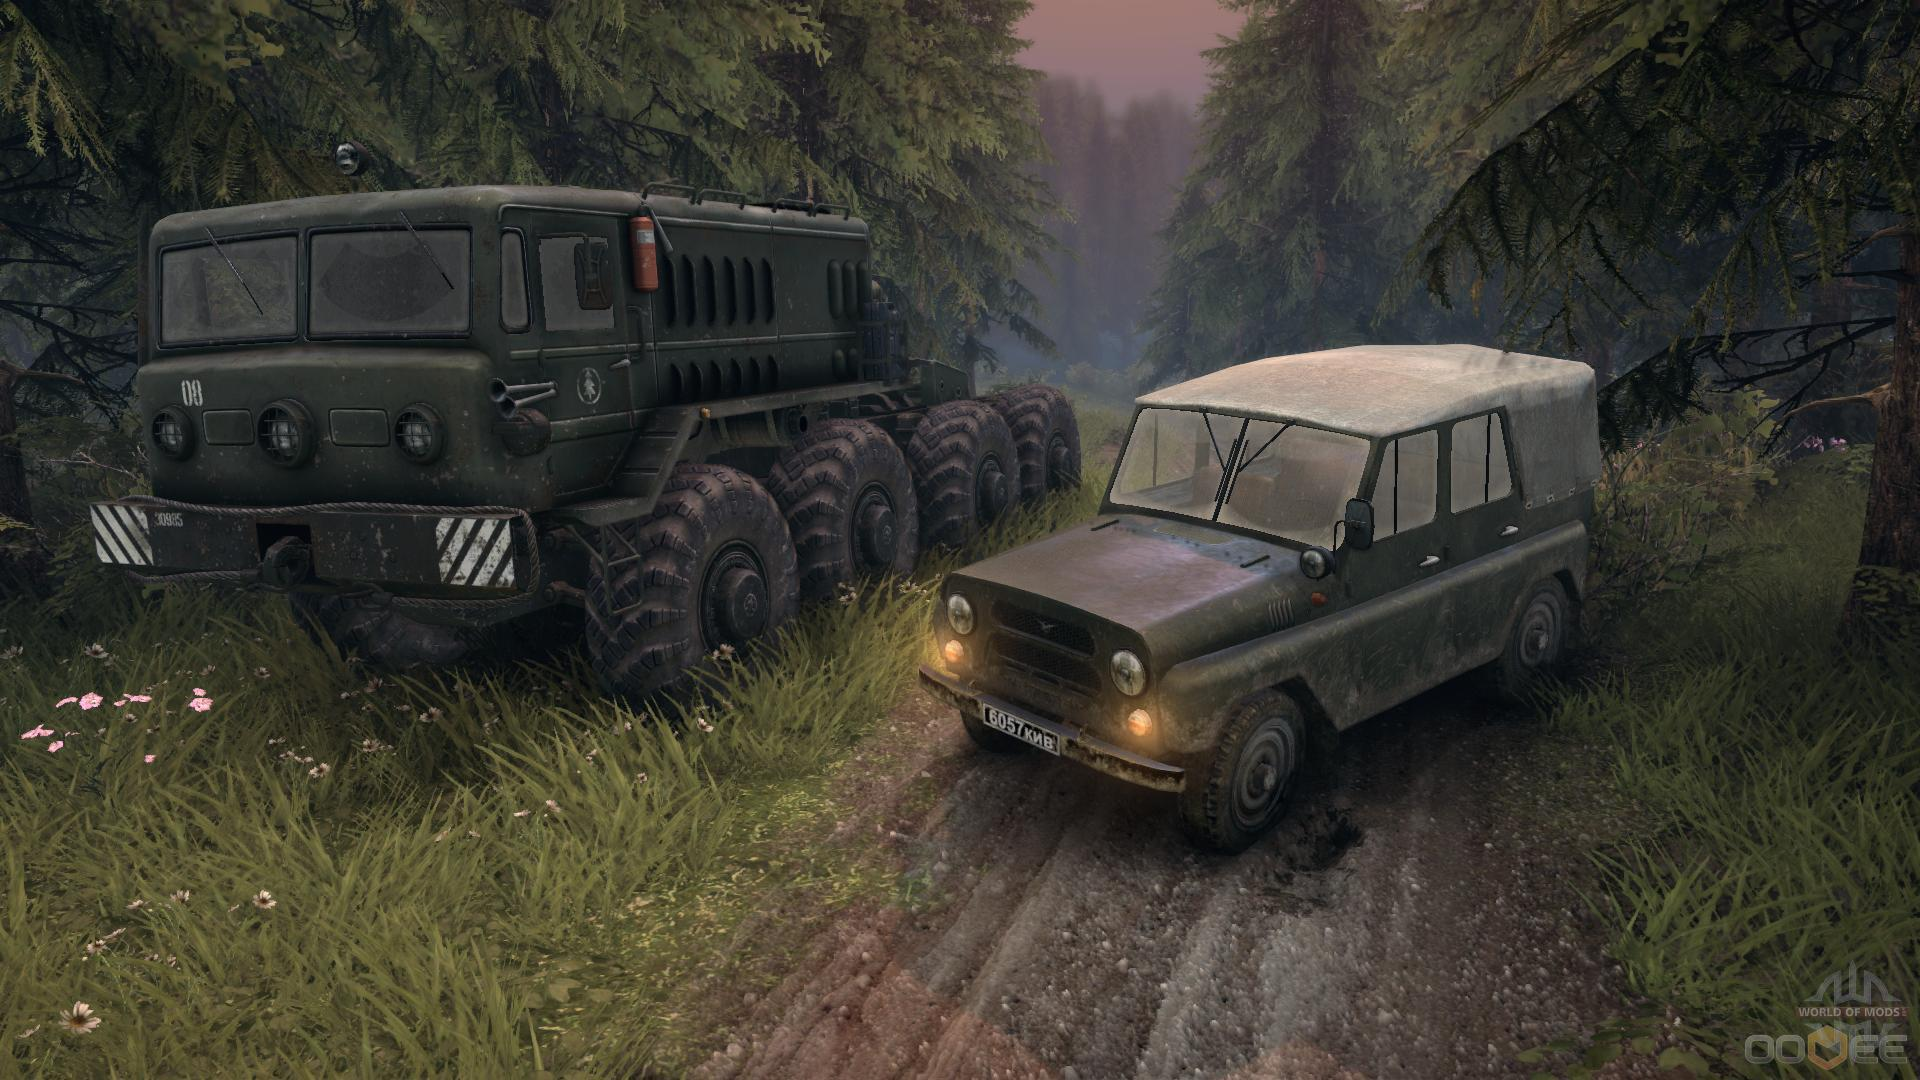 SPINTIRES (Steam Key, Region Free)